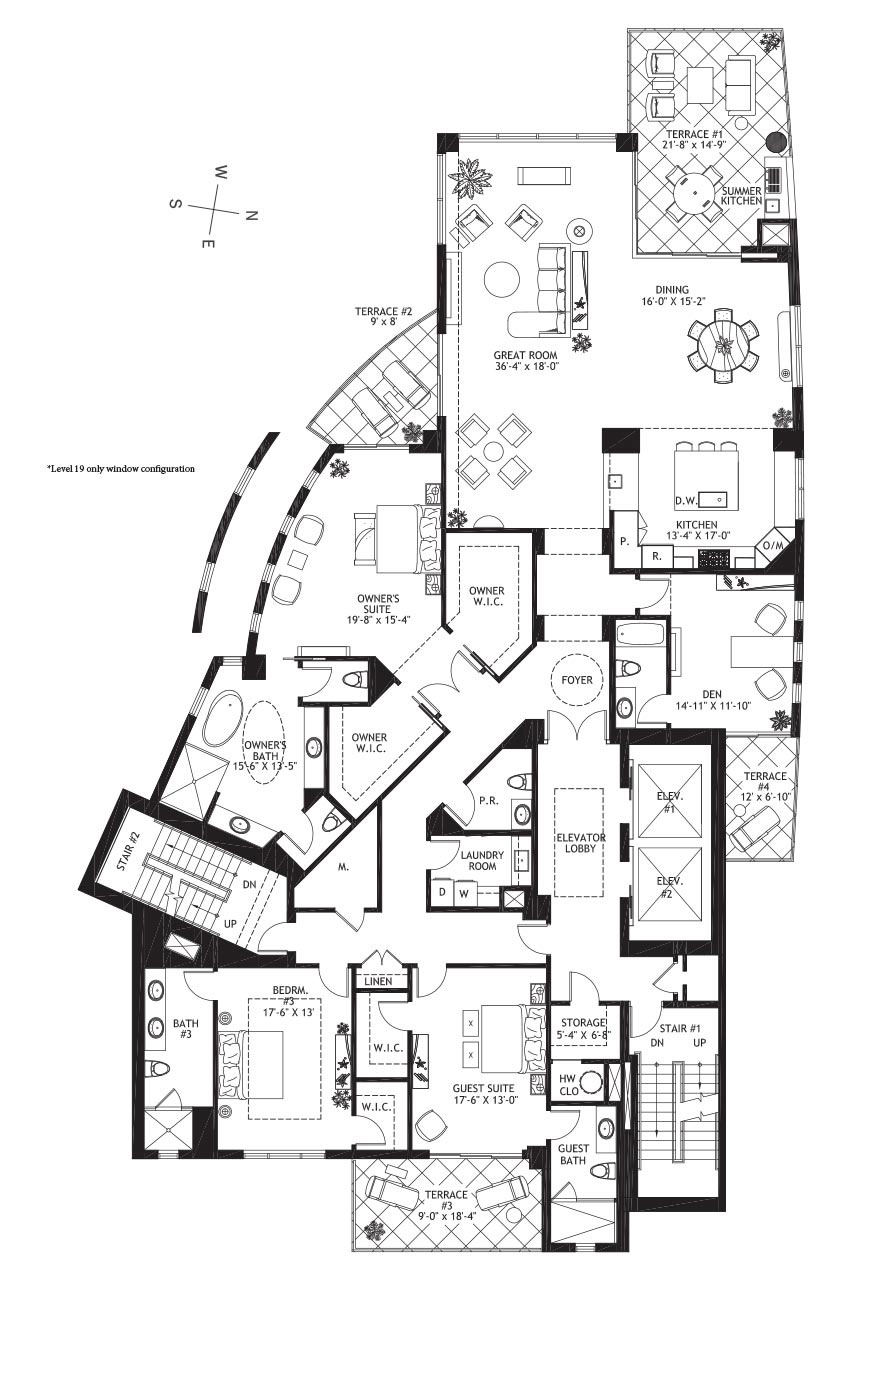 Residence Level 17-19 - Floor plan